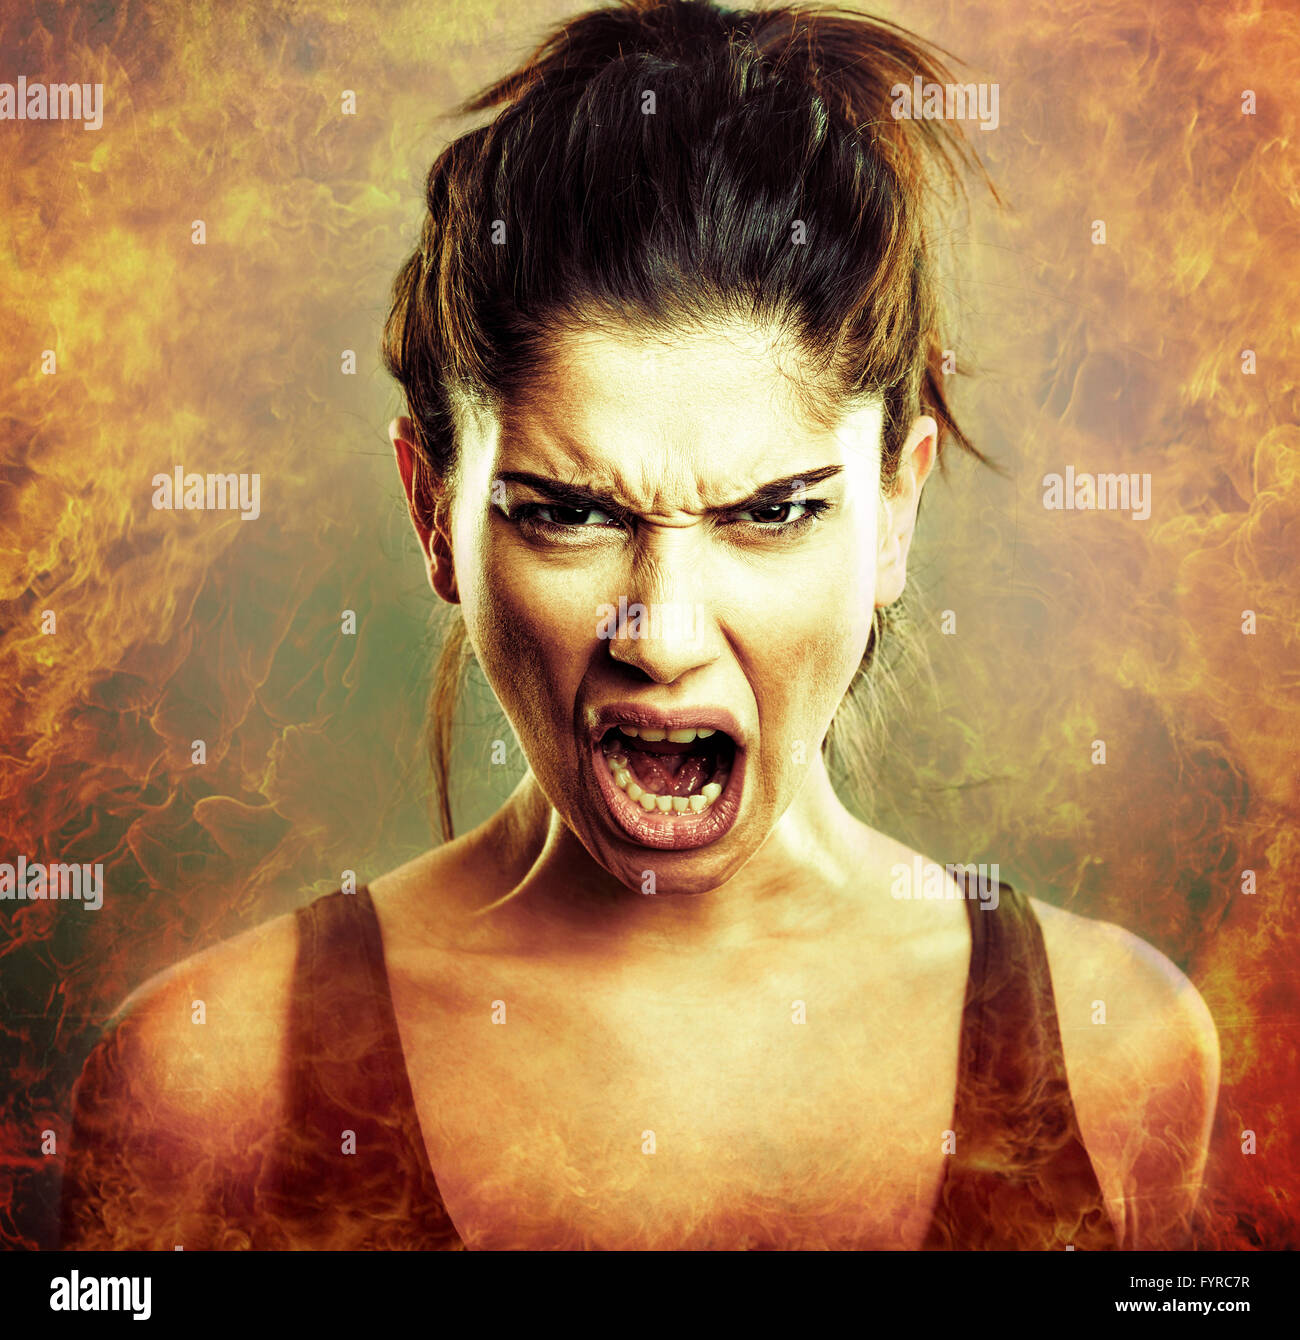 Rage explosion. Scream of angry young woman - Stock Image